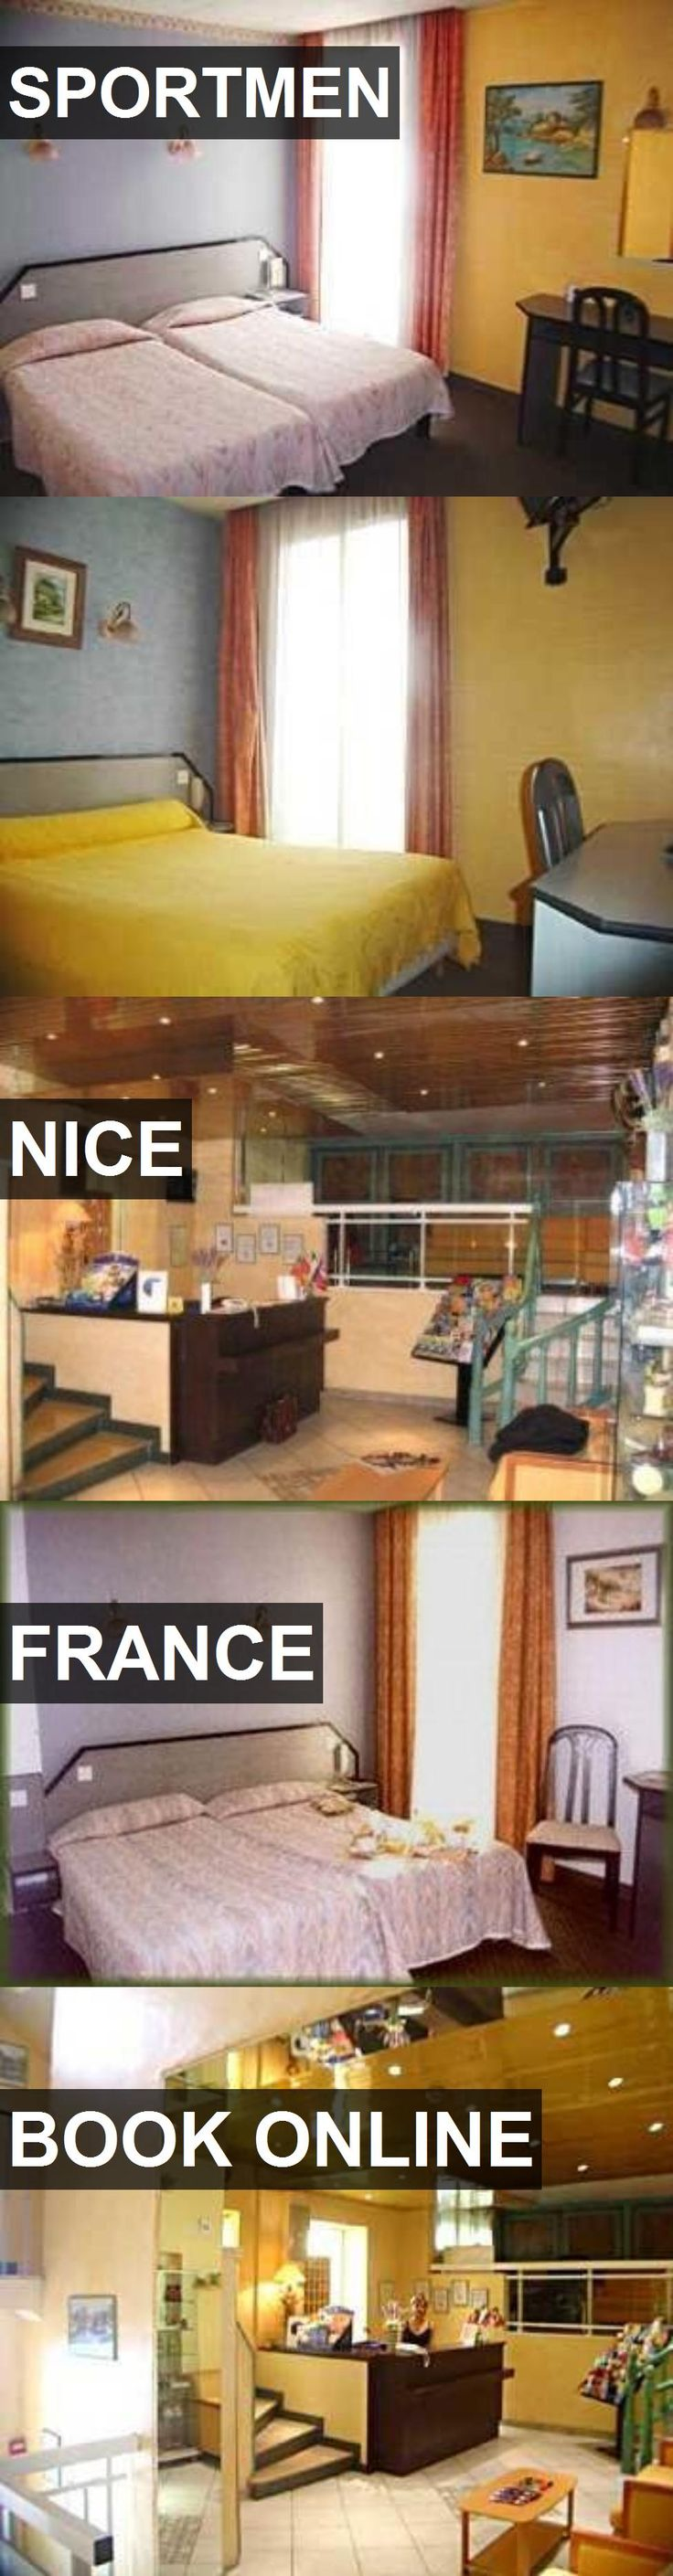 Hotel SPORTMEN in Nice, France. For more information, photos, reviews and best prices please follow the link. #France #Nice #SPORTMEN #hotel #travel #vacation